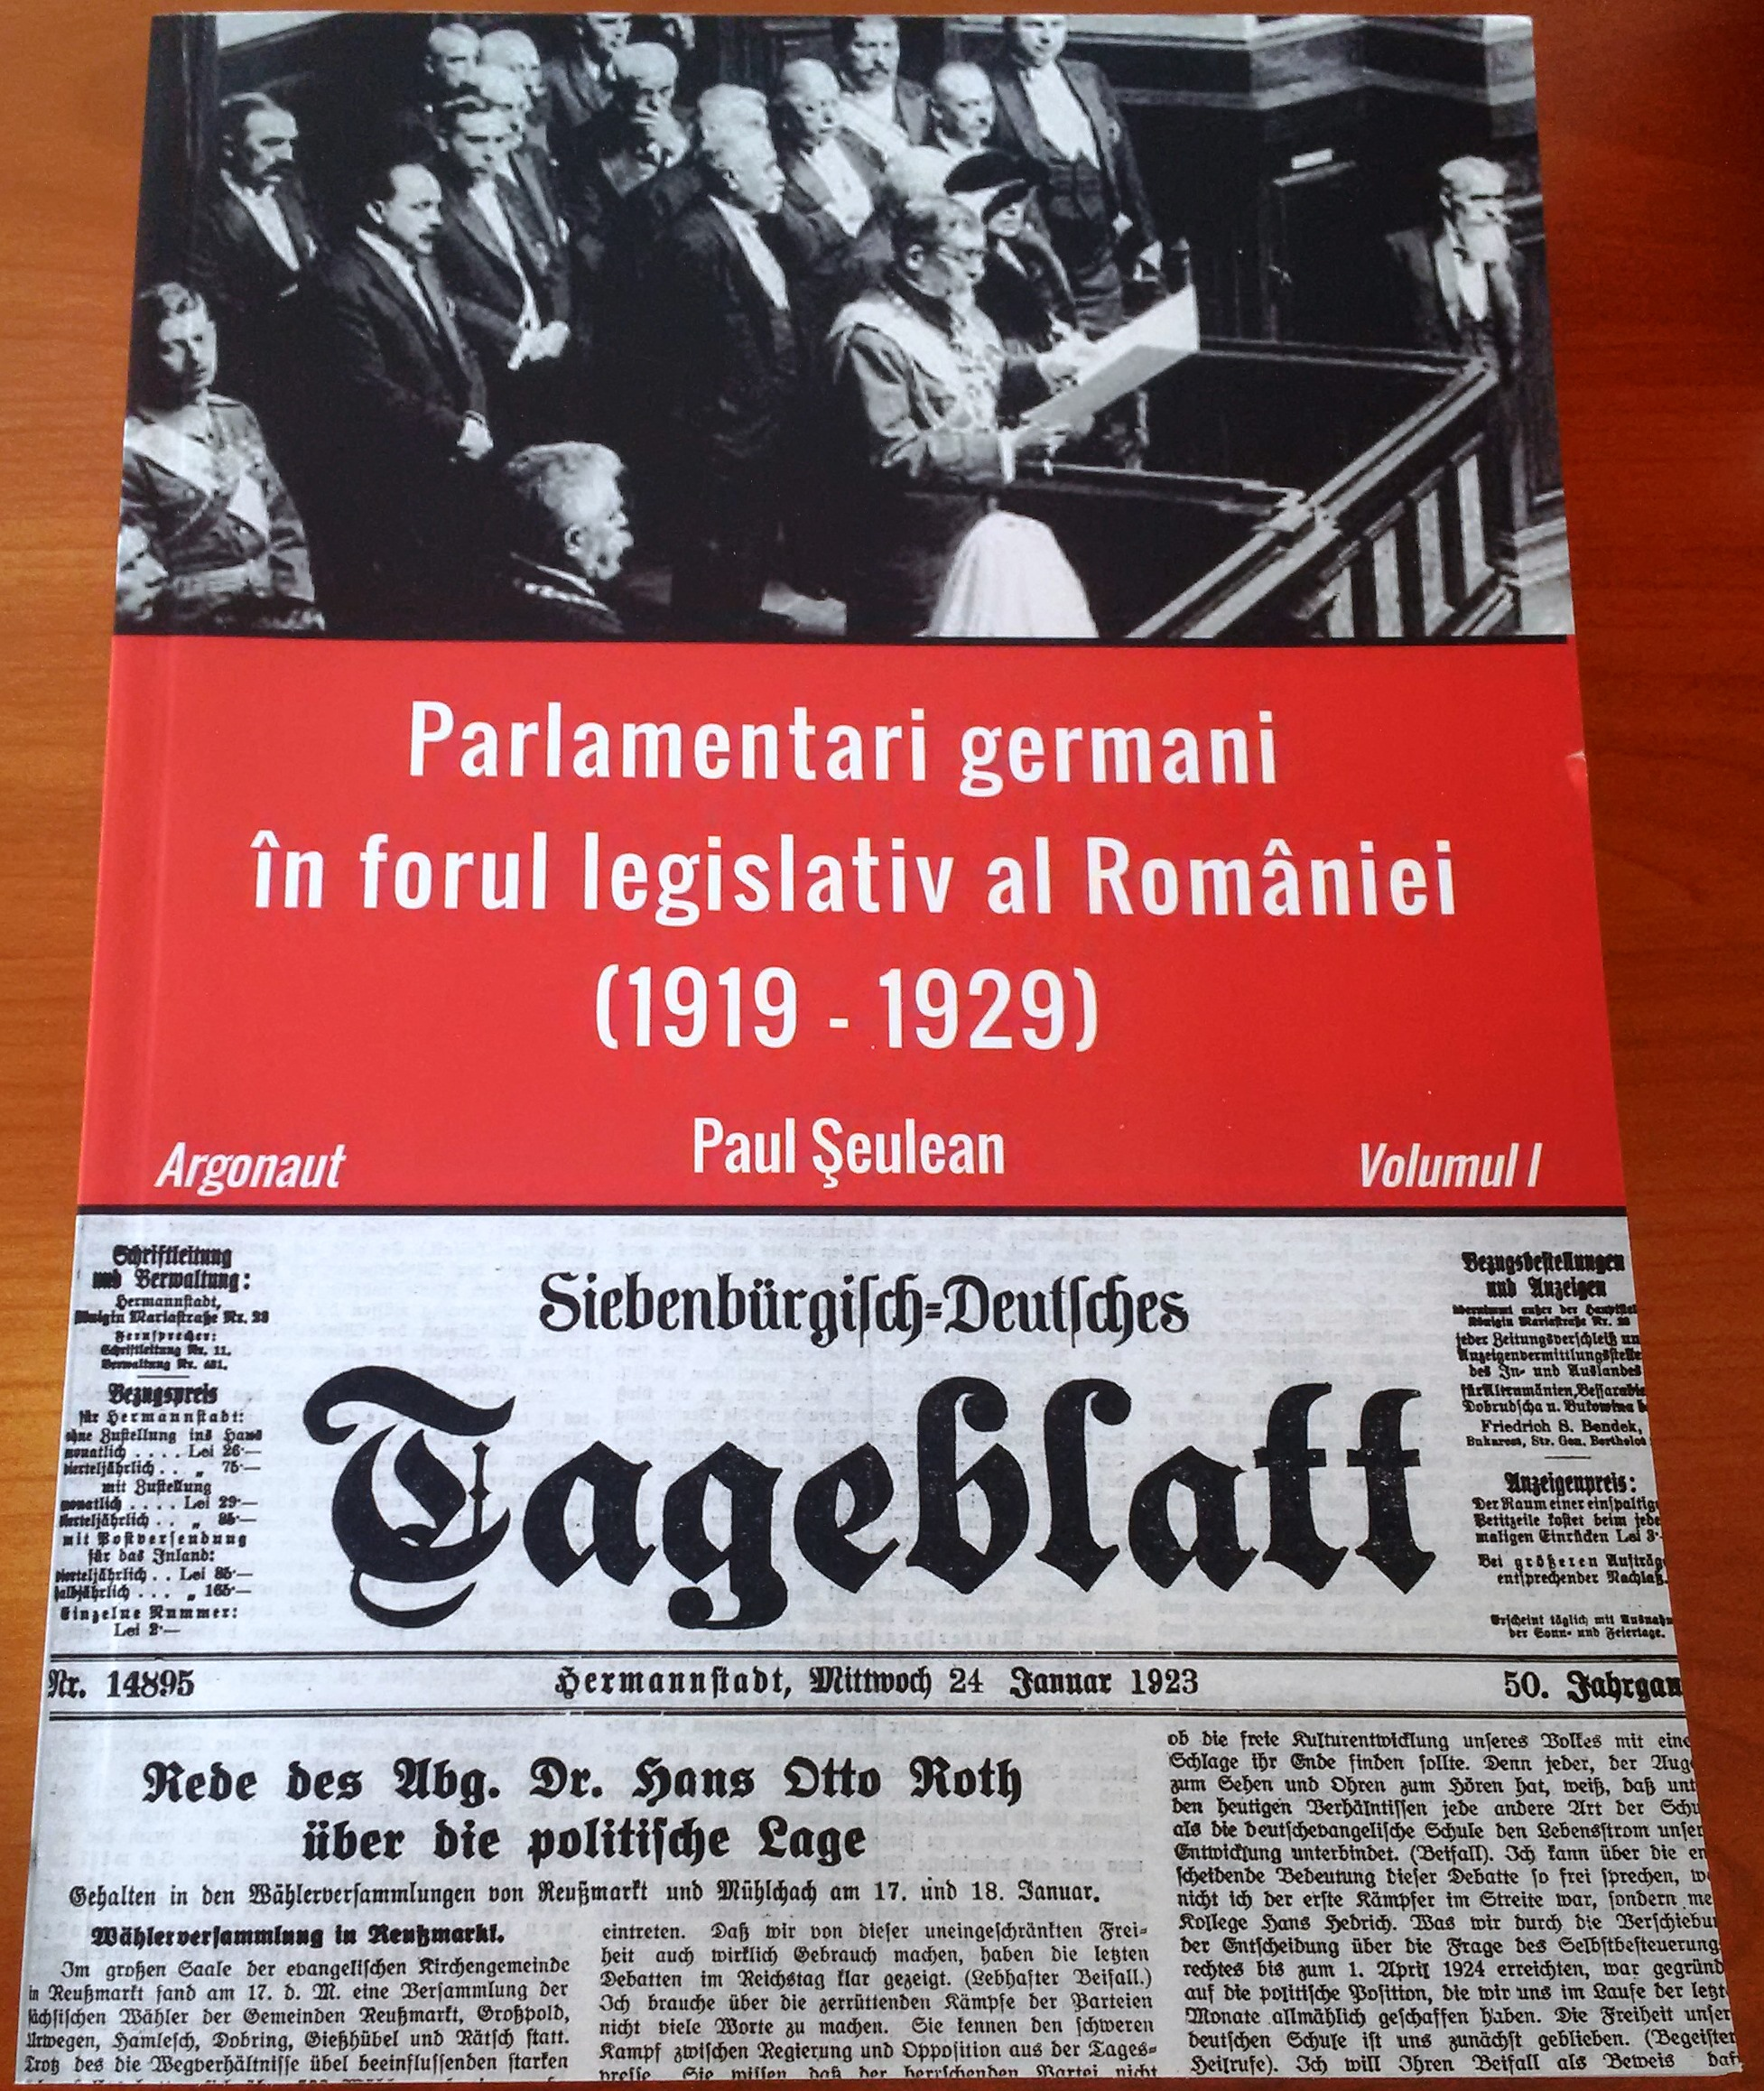 Cover: Parlamentari germani in forul legislativ al Romaniei (1919-1929)